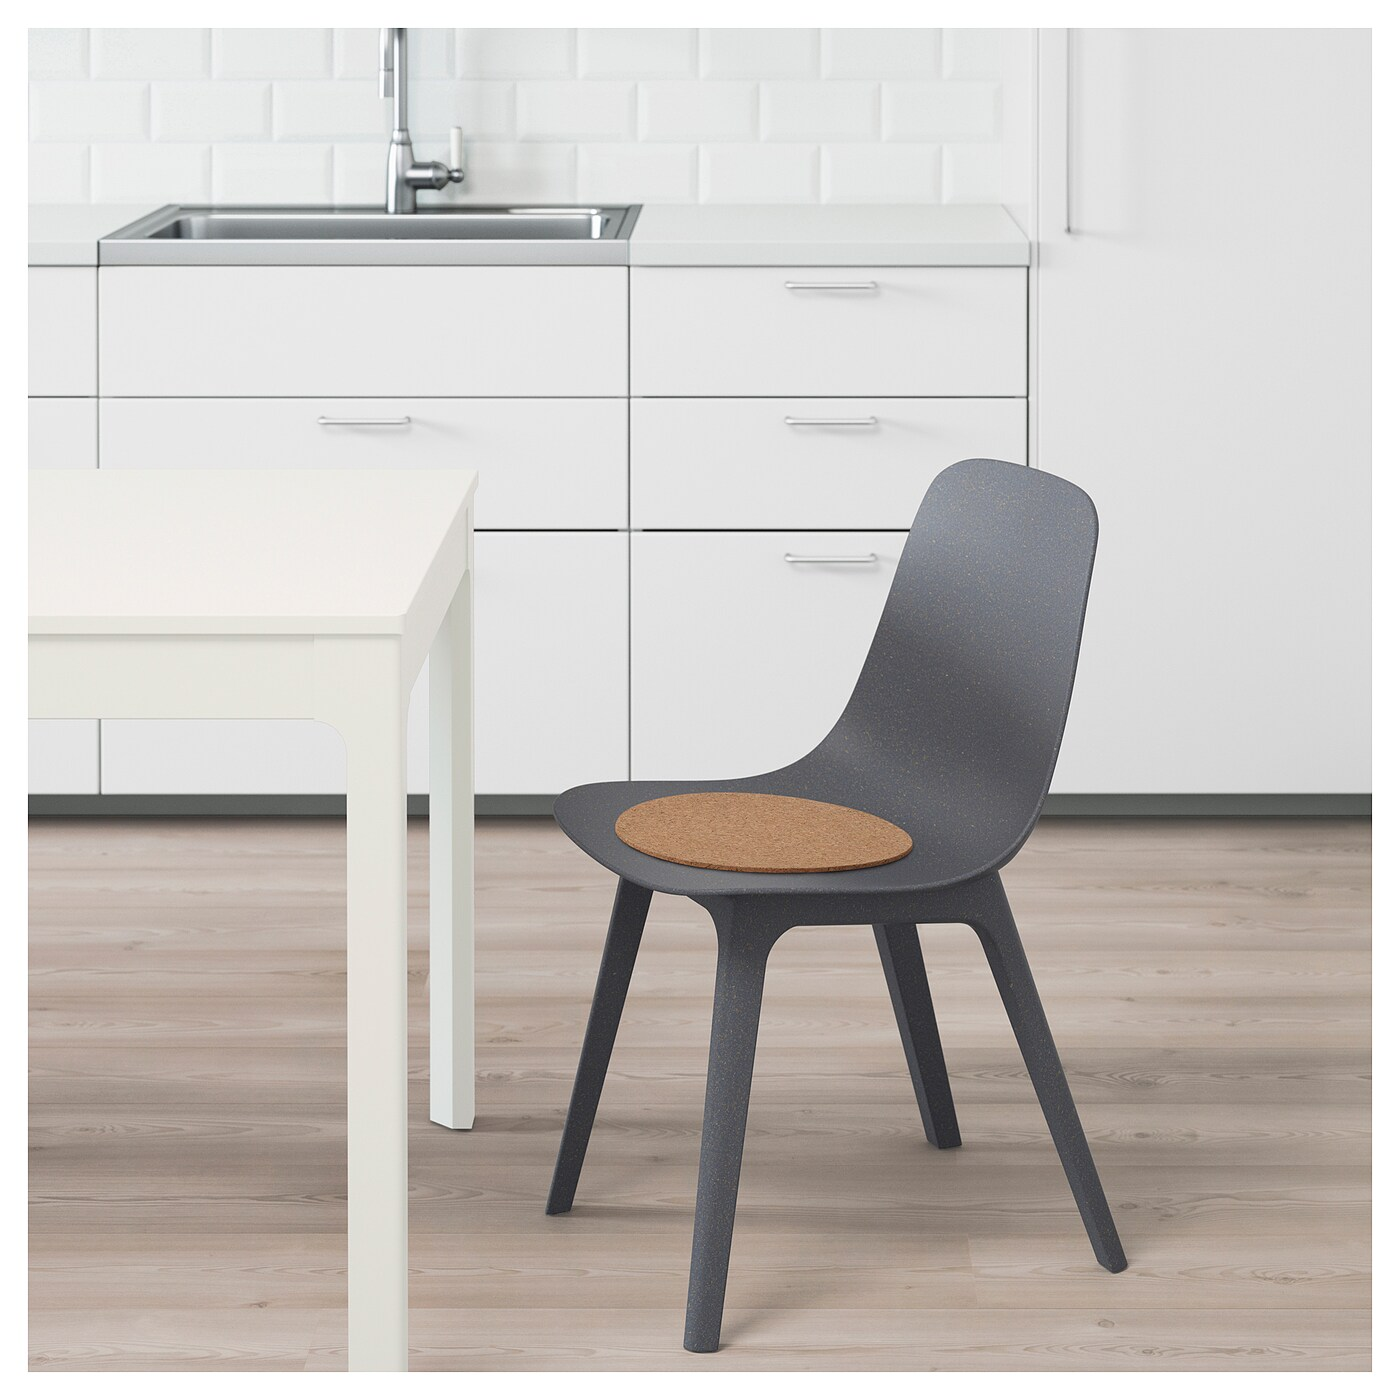 Carreau De Chaise KvÄllsfly Carreau De Chaise Liège 35 Cm Ikea